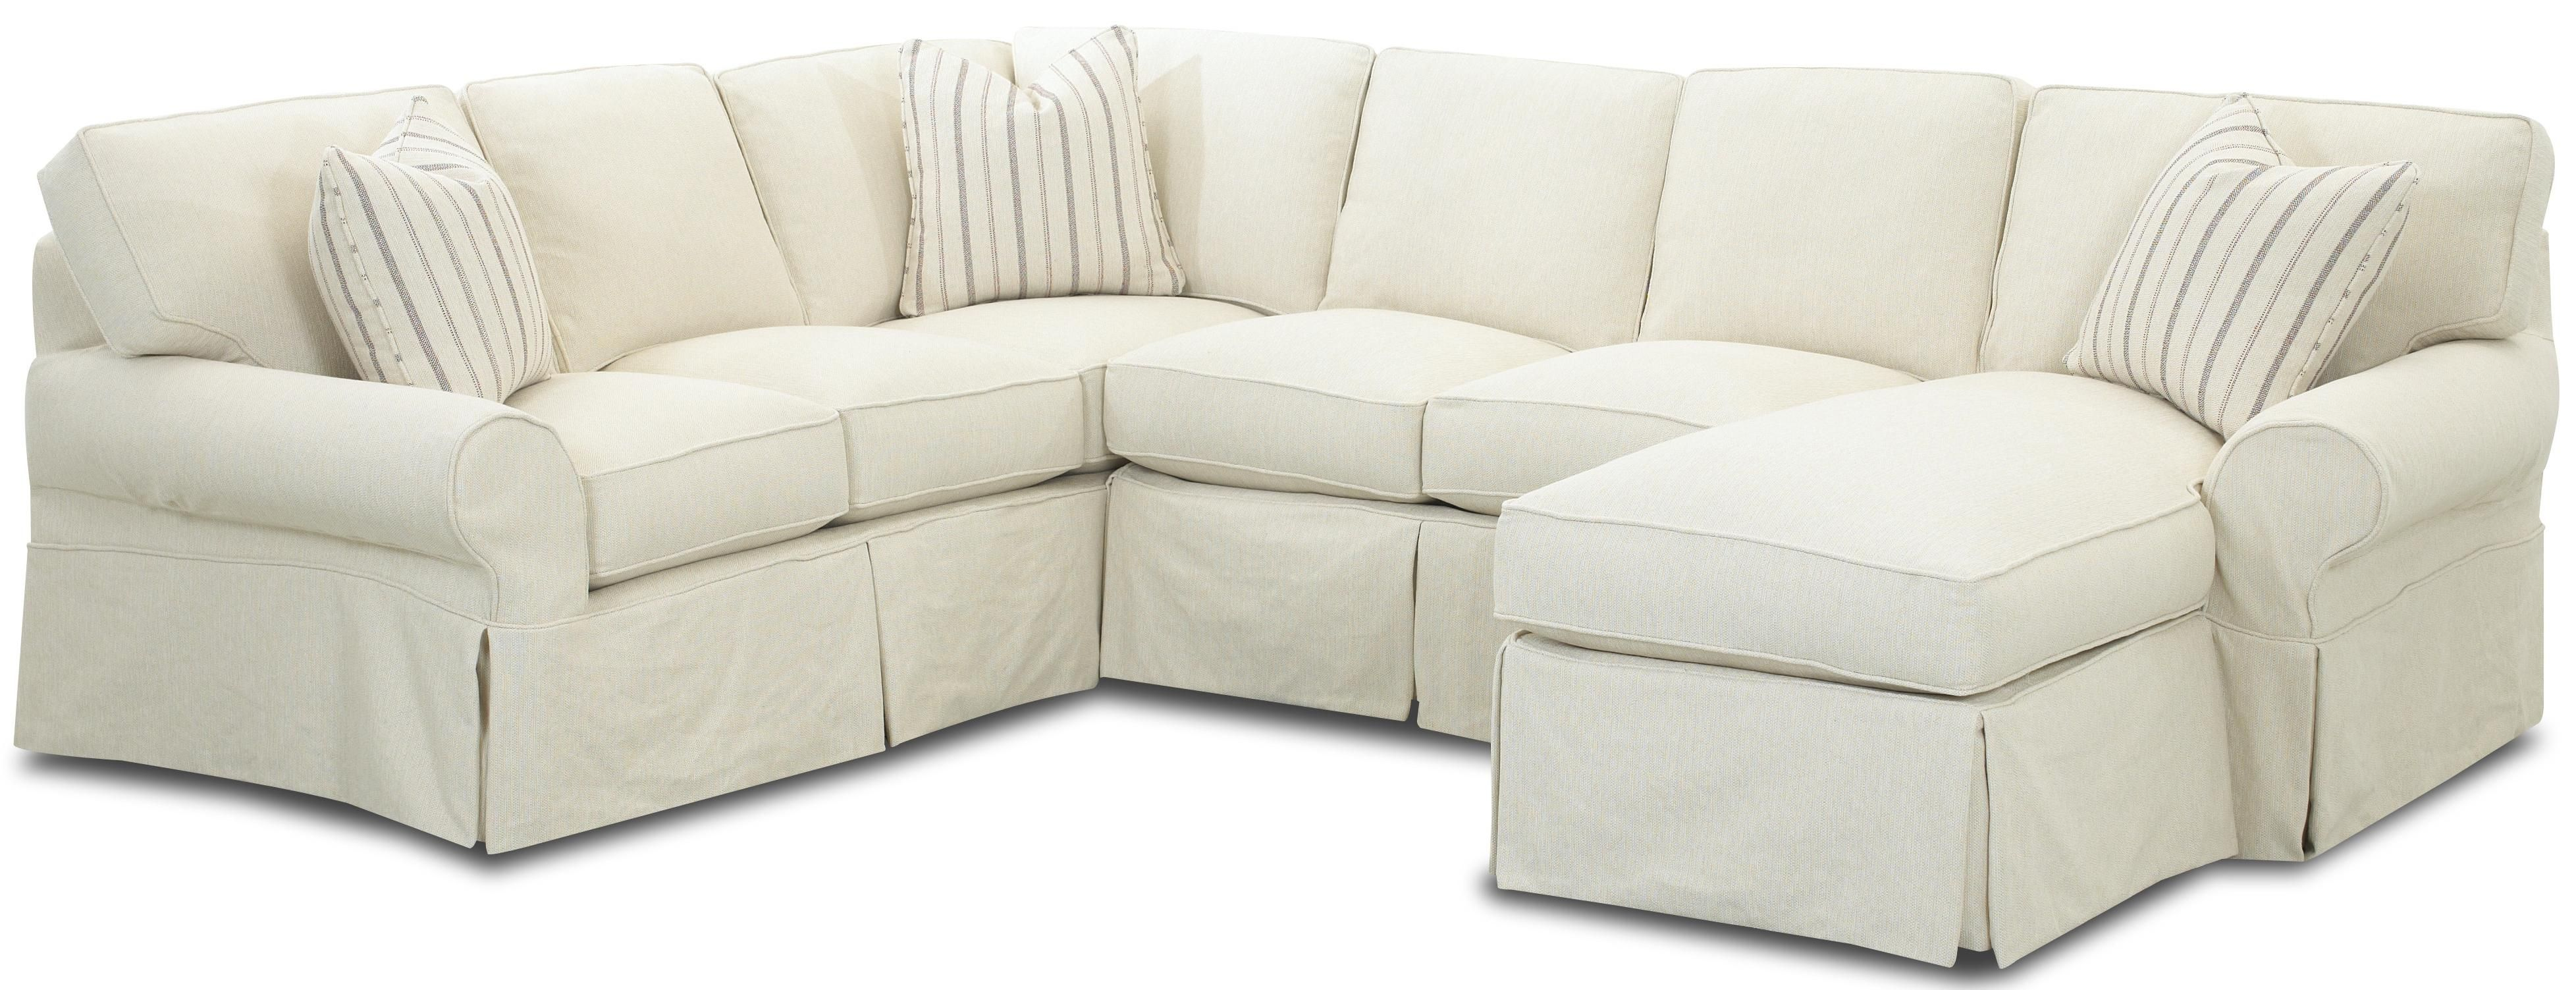 Rp Sectional Sofa Cover